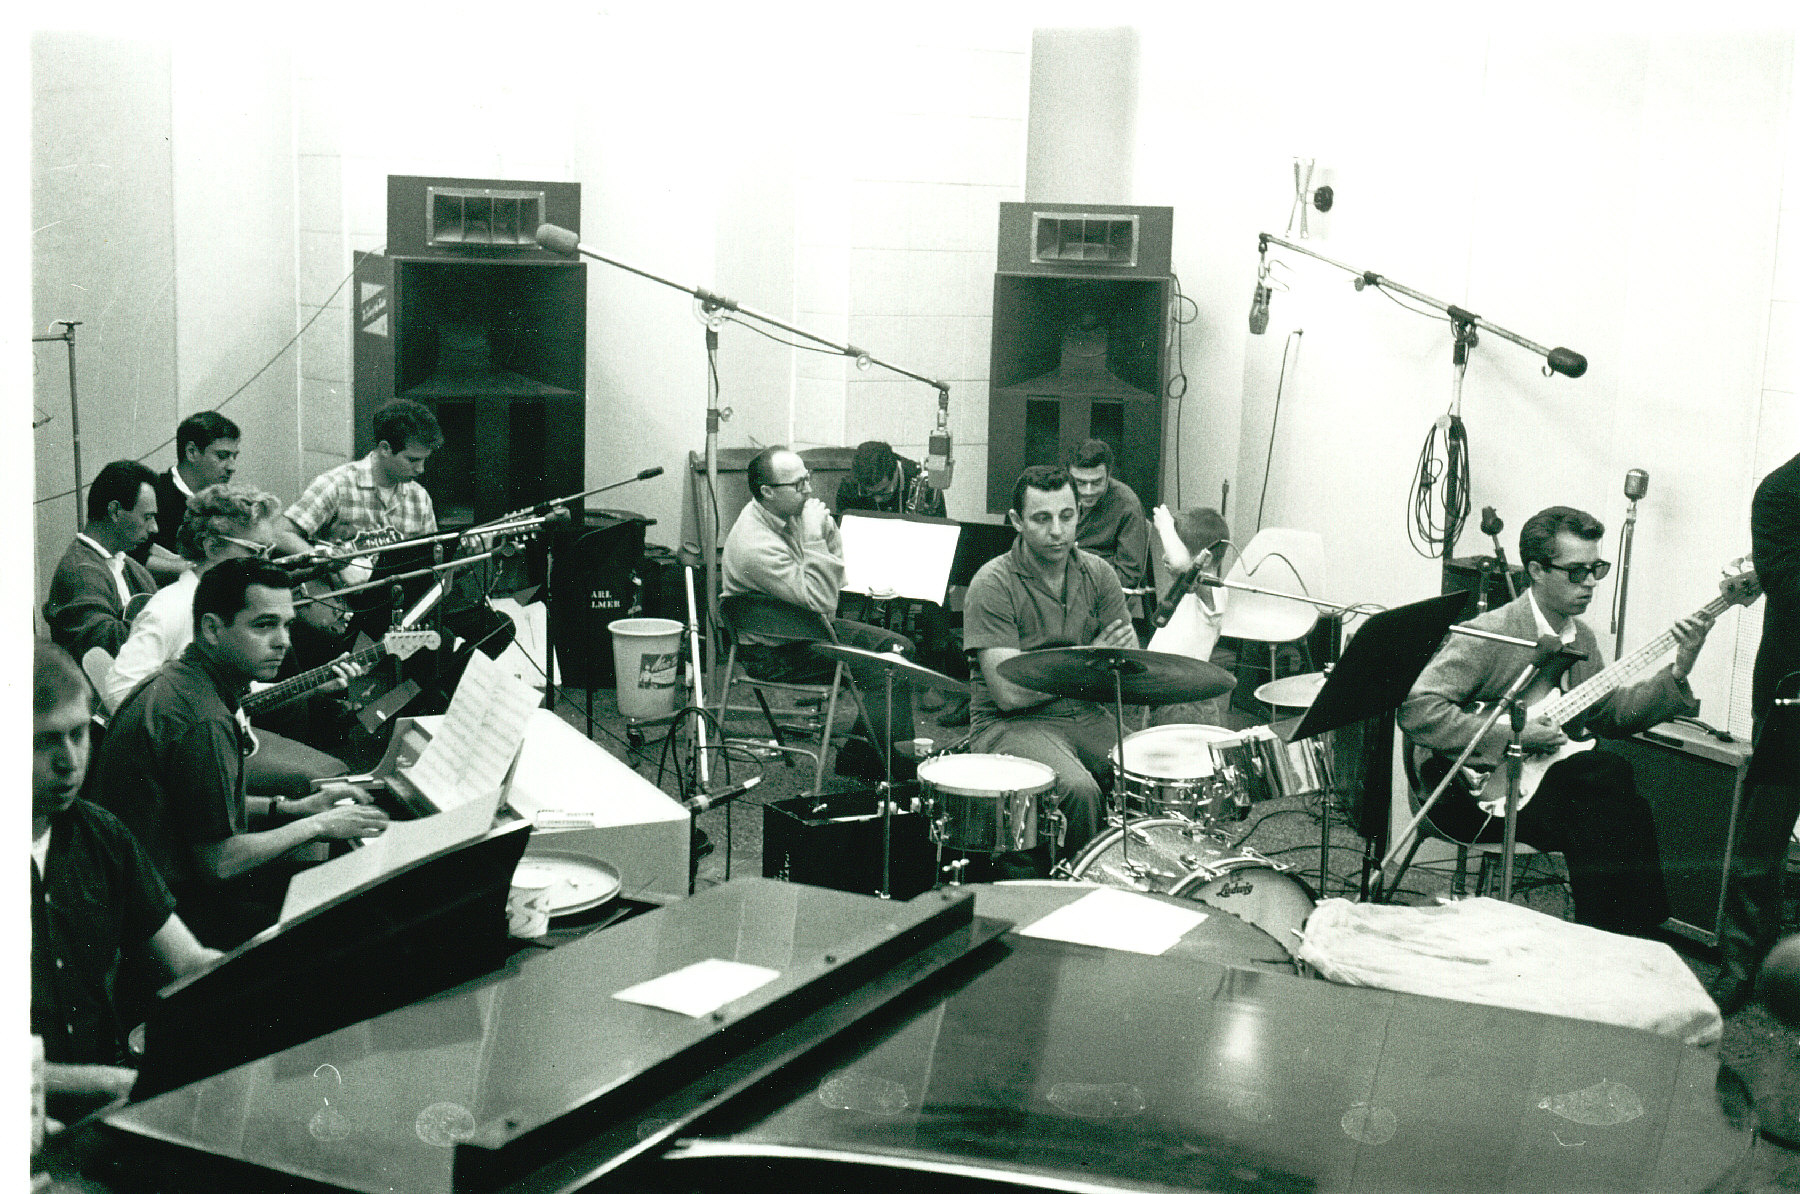 Members of The Wrecking Crew gathered for a Phil Spector session.